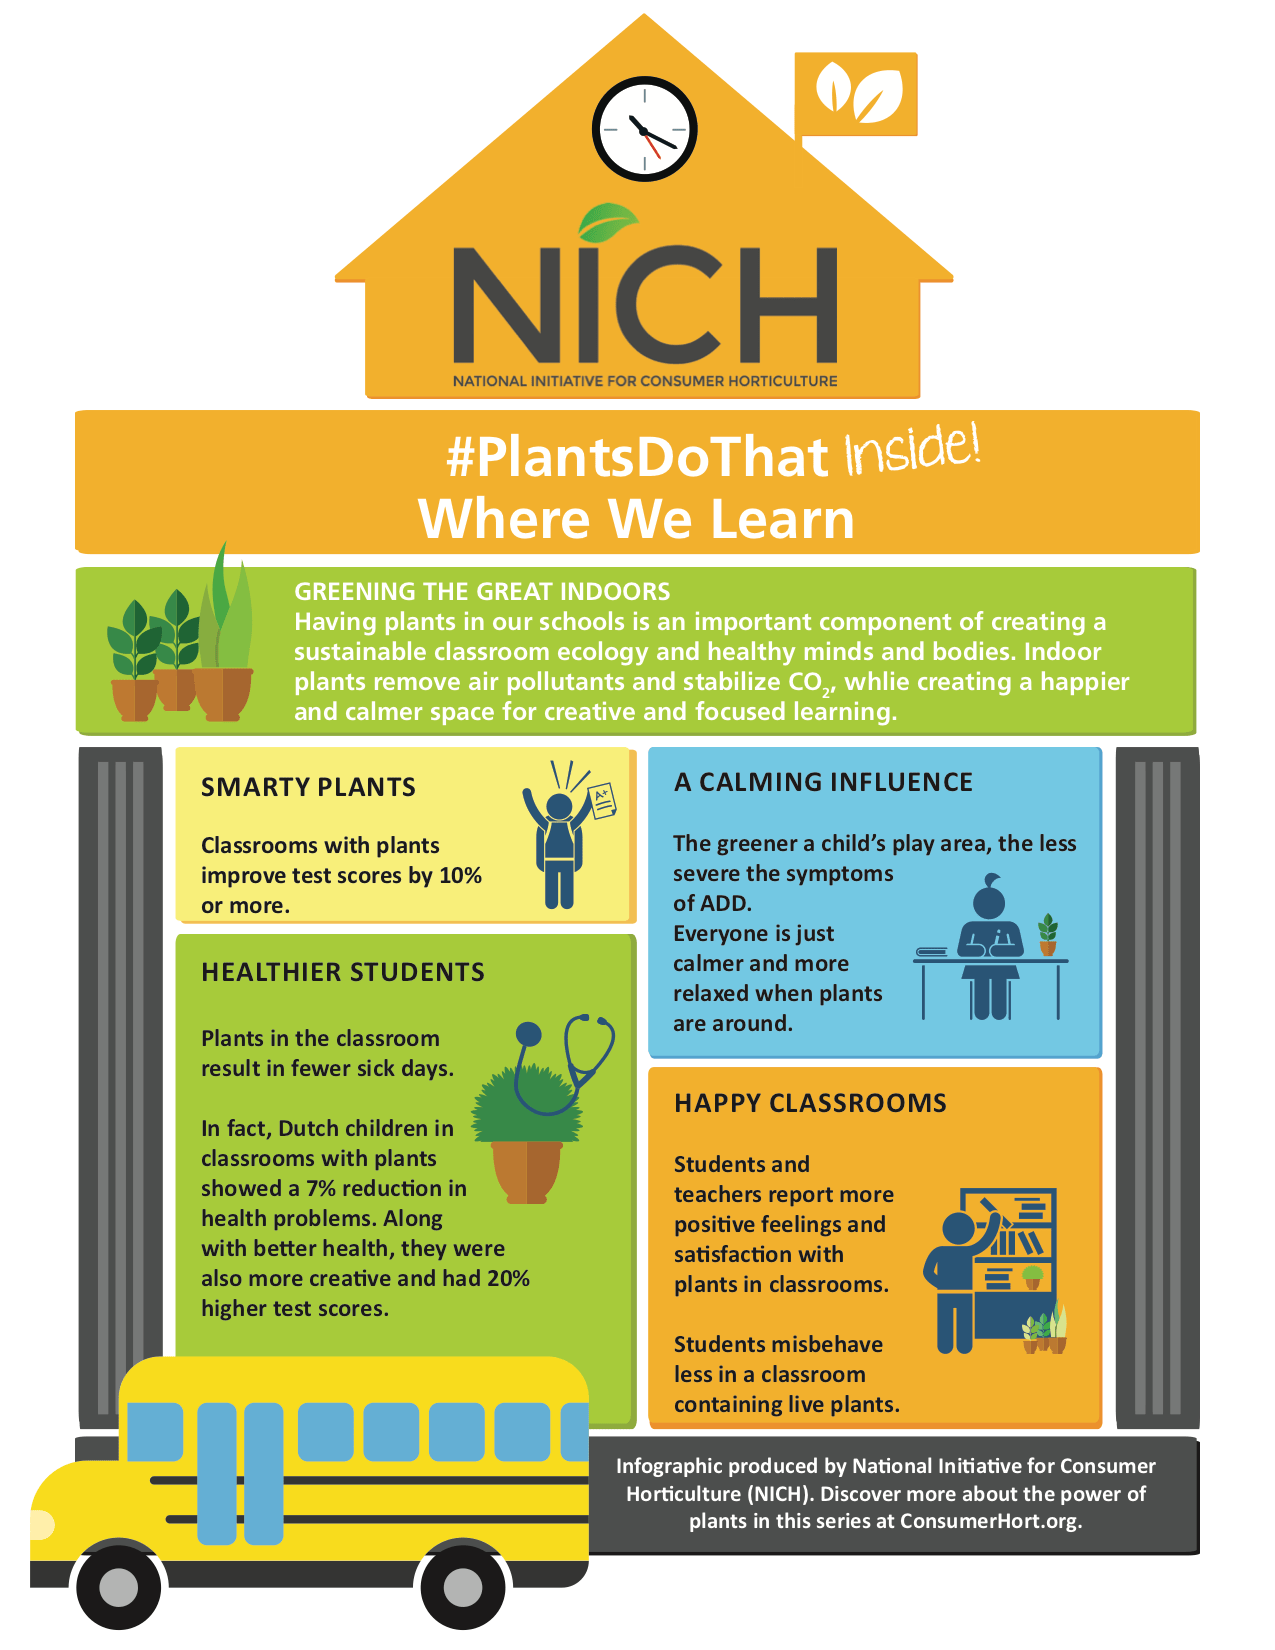 PlantsDoThat-Indoors-WhereWeLearn